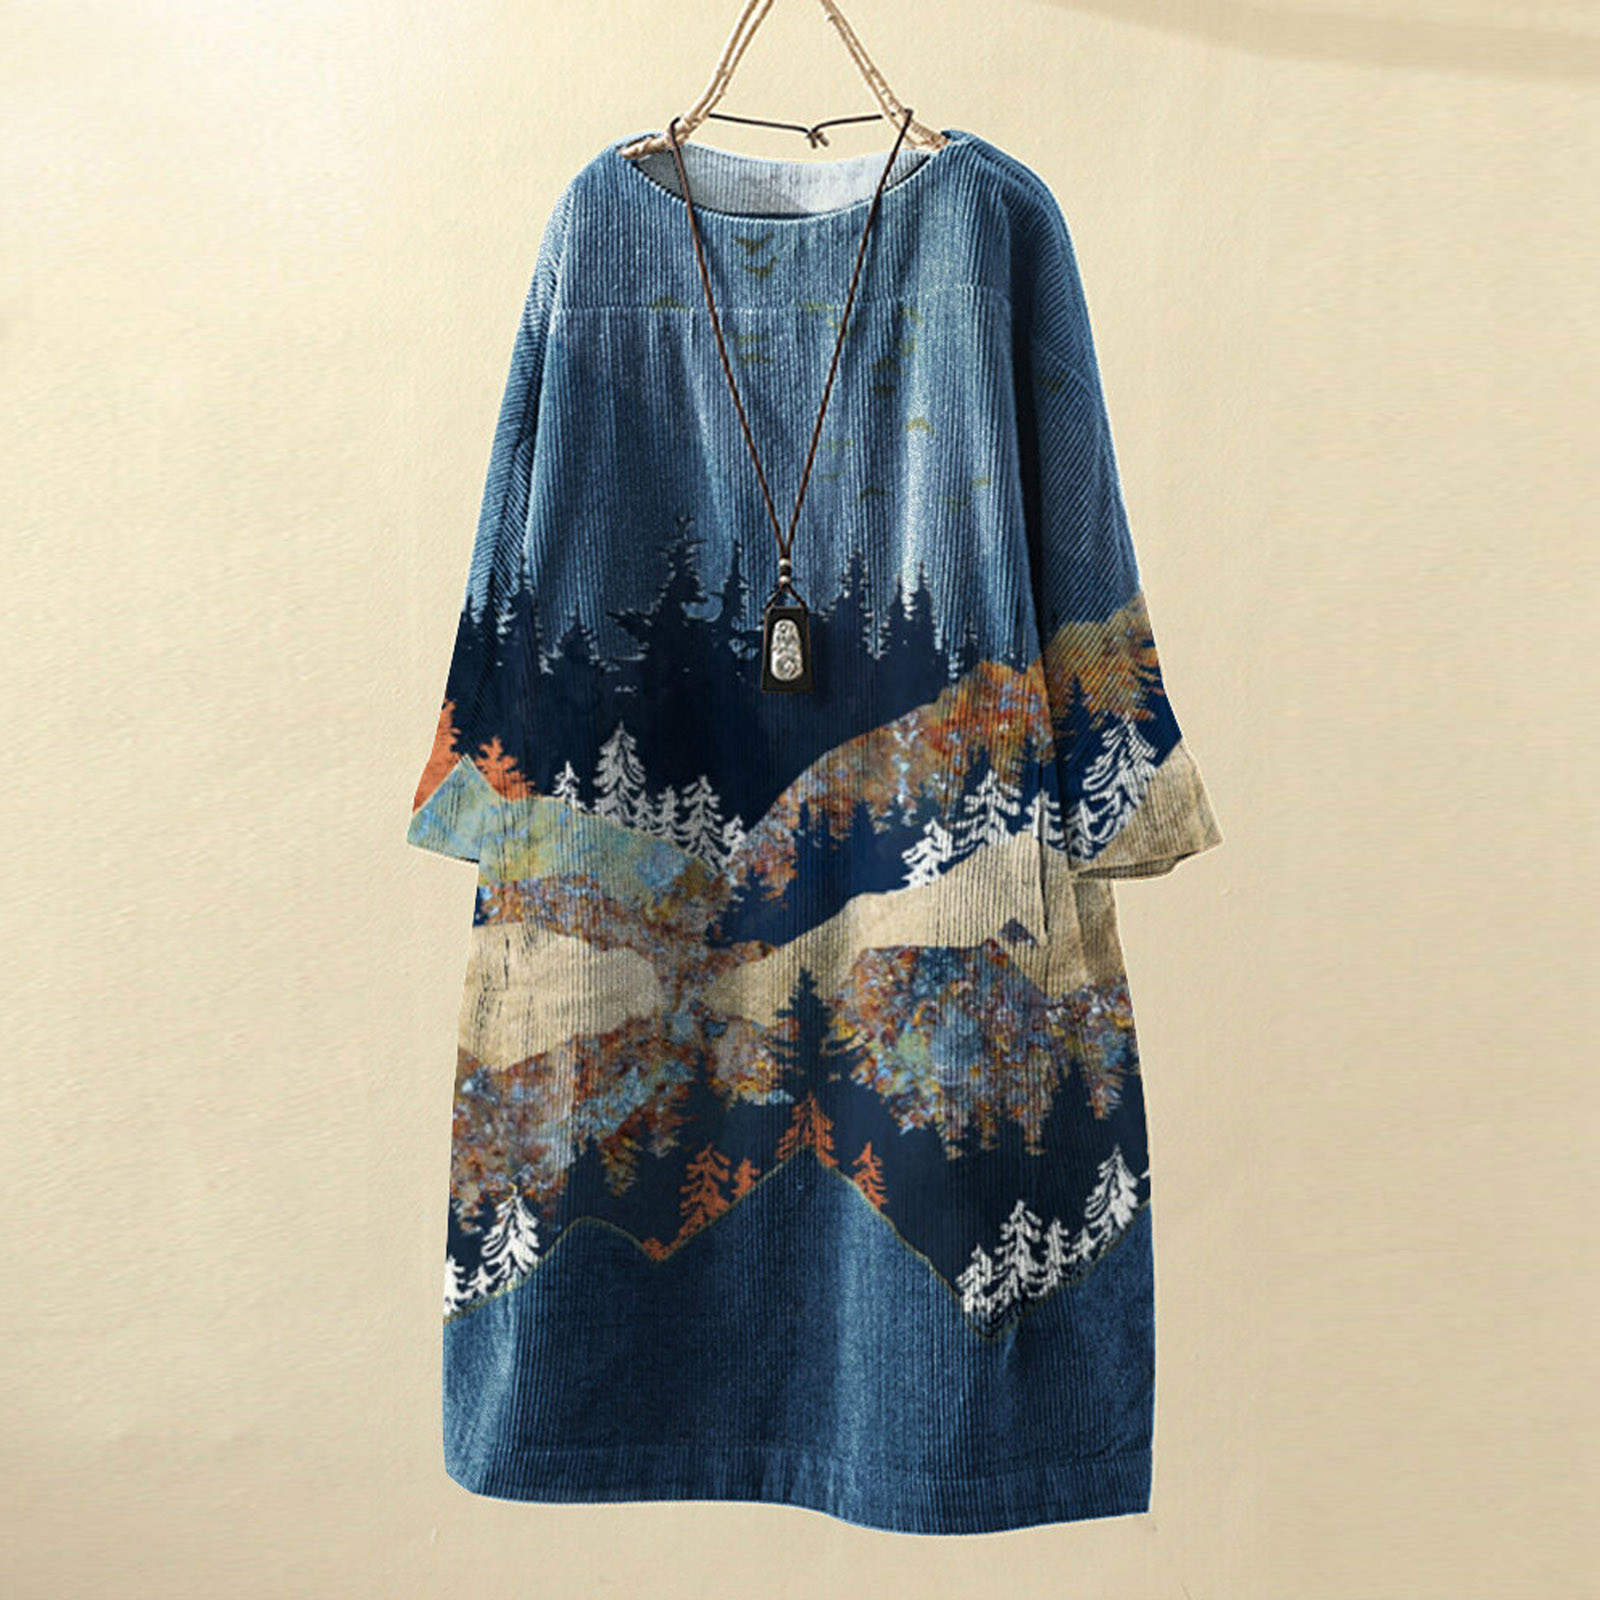 Women Vintage Pockets Dresses Corduroy Harajuku Clothes Landscape Print Long Sleeve Clothing Loose